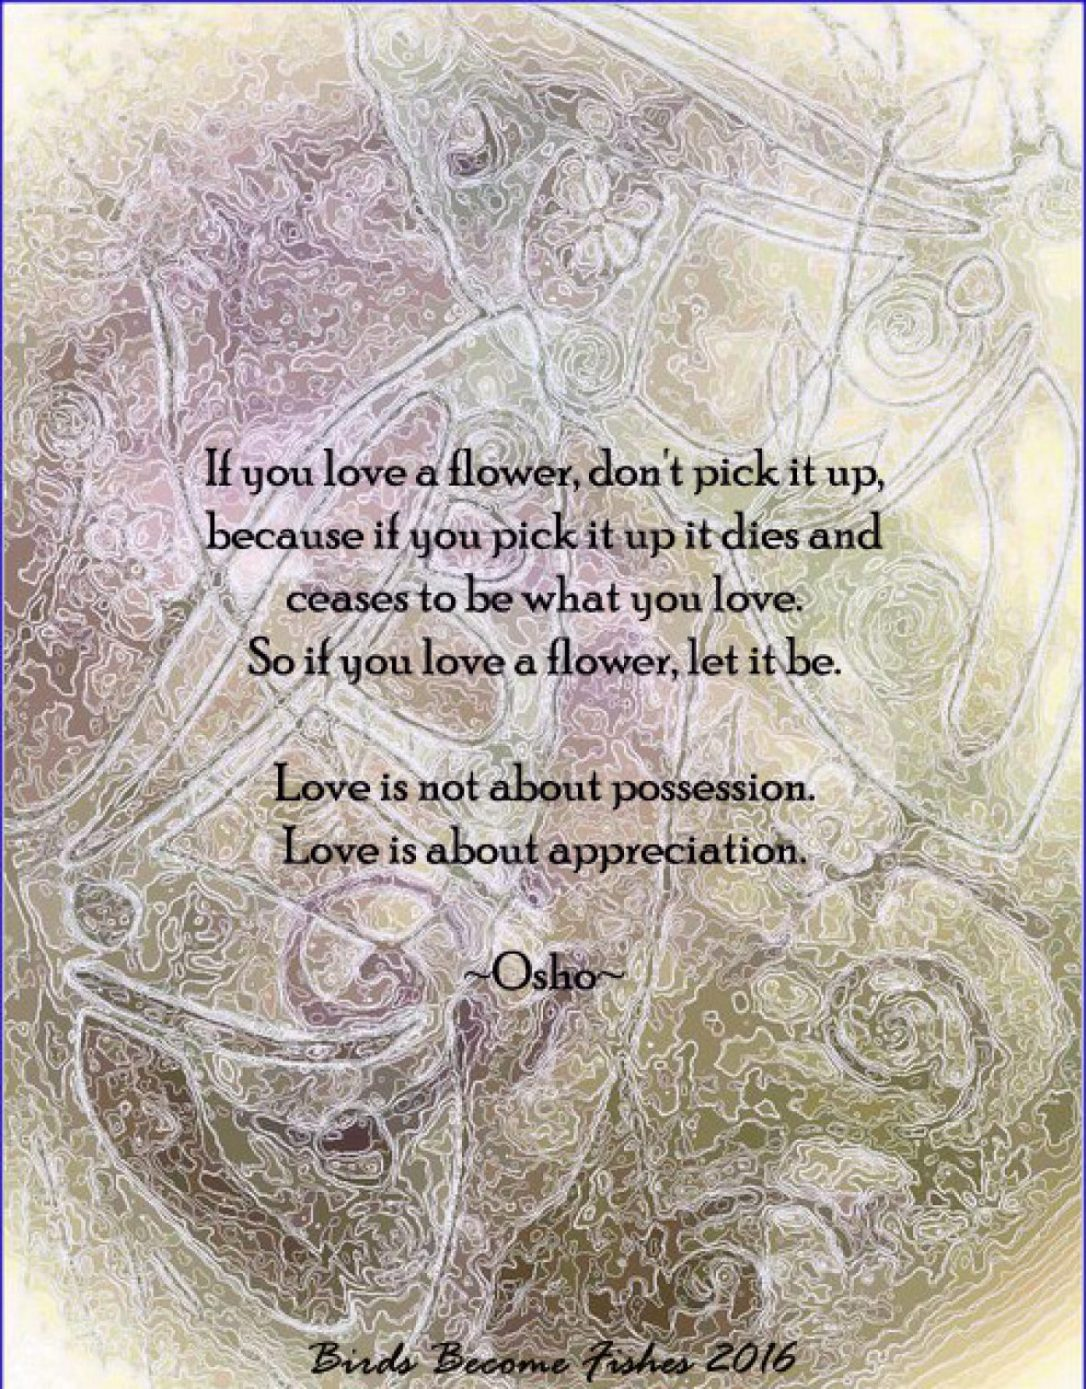 cropped-osho-flower-quote.jpg